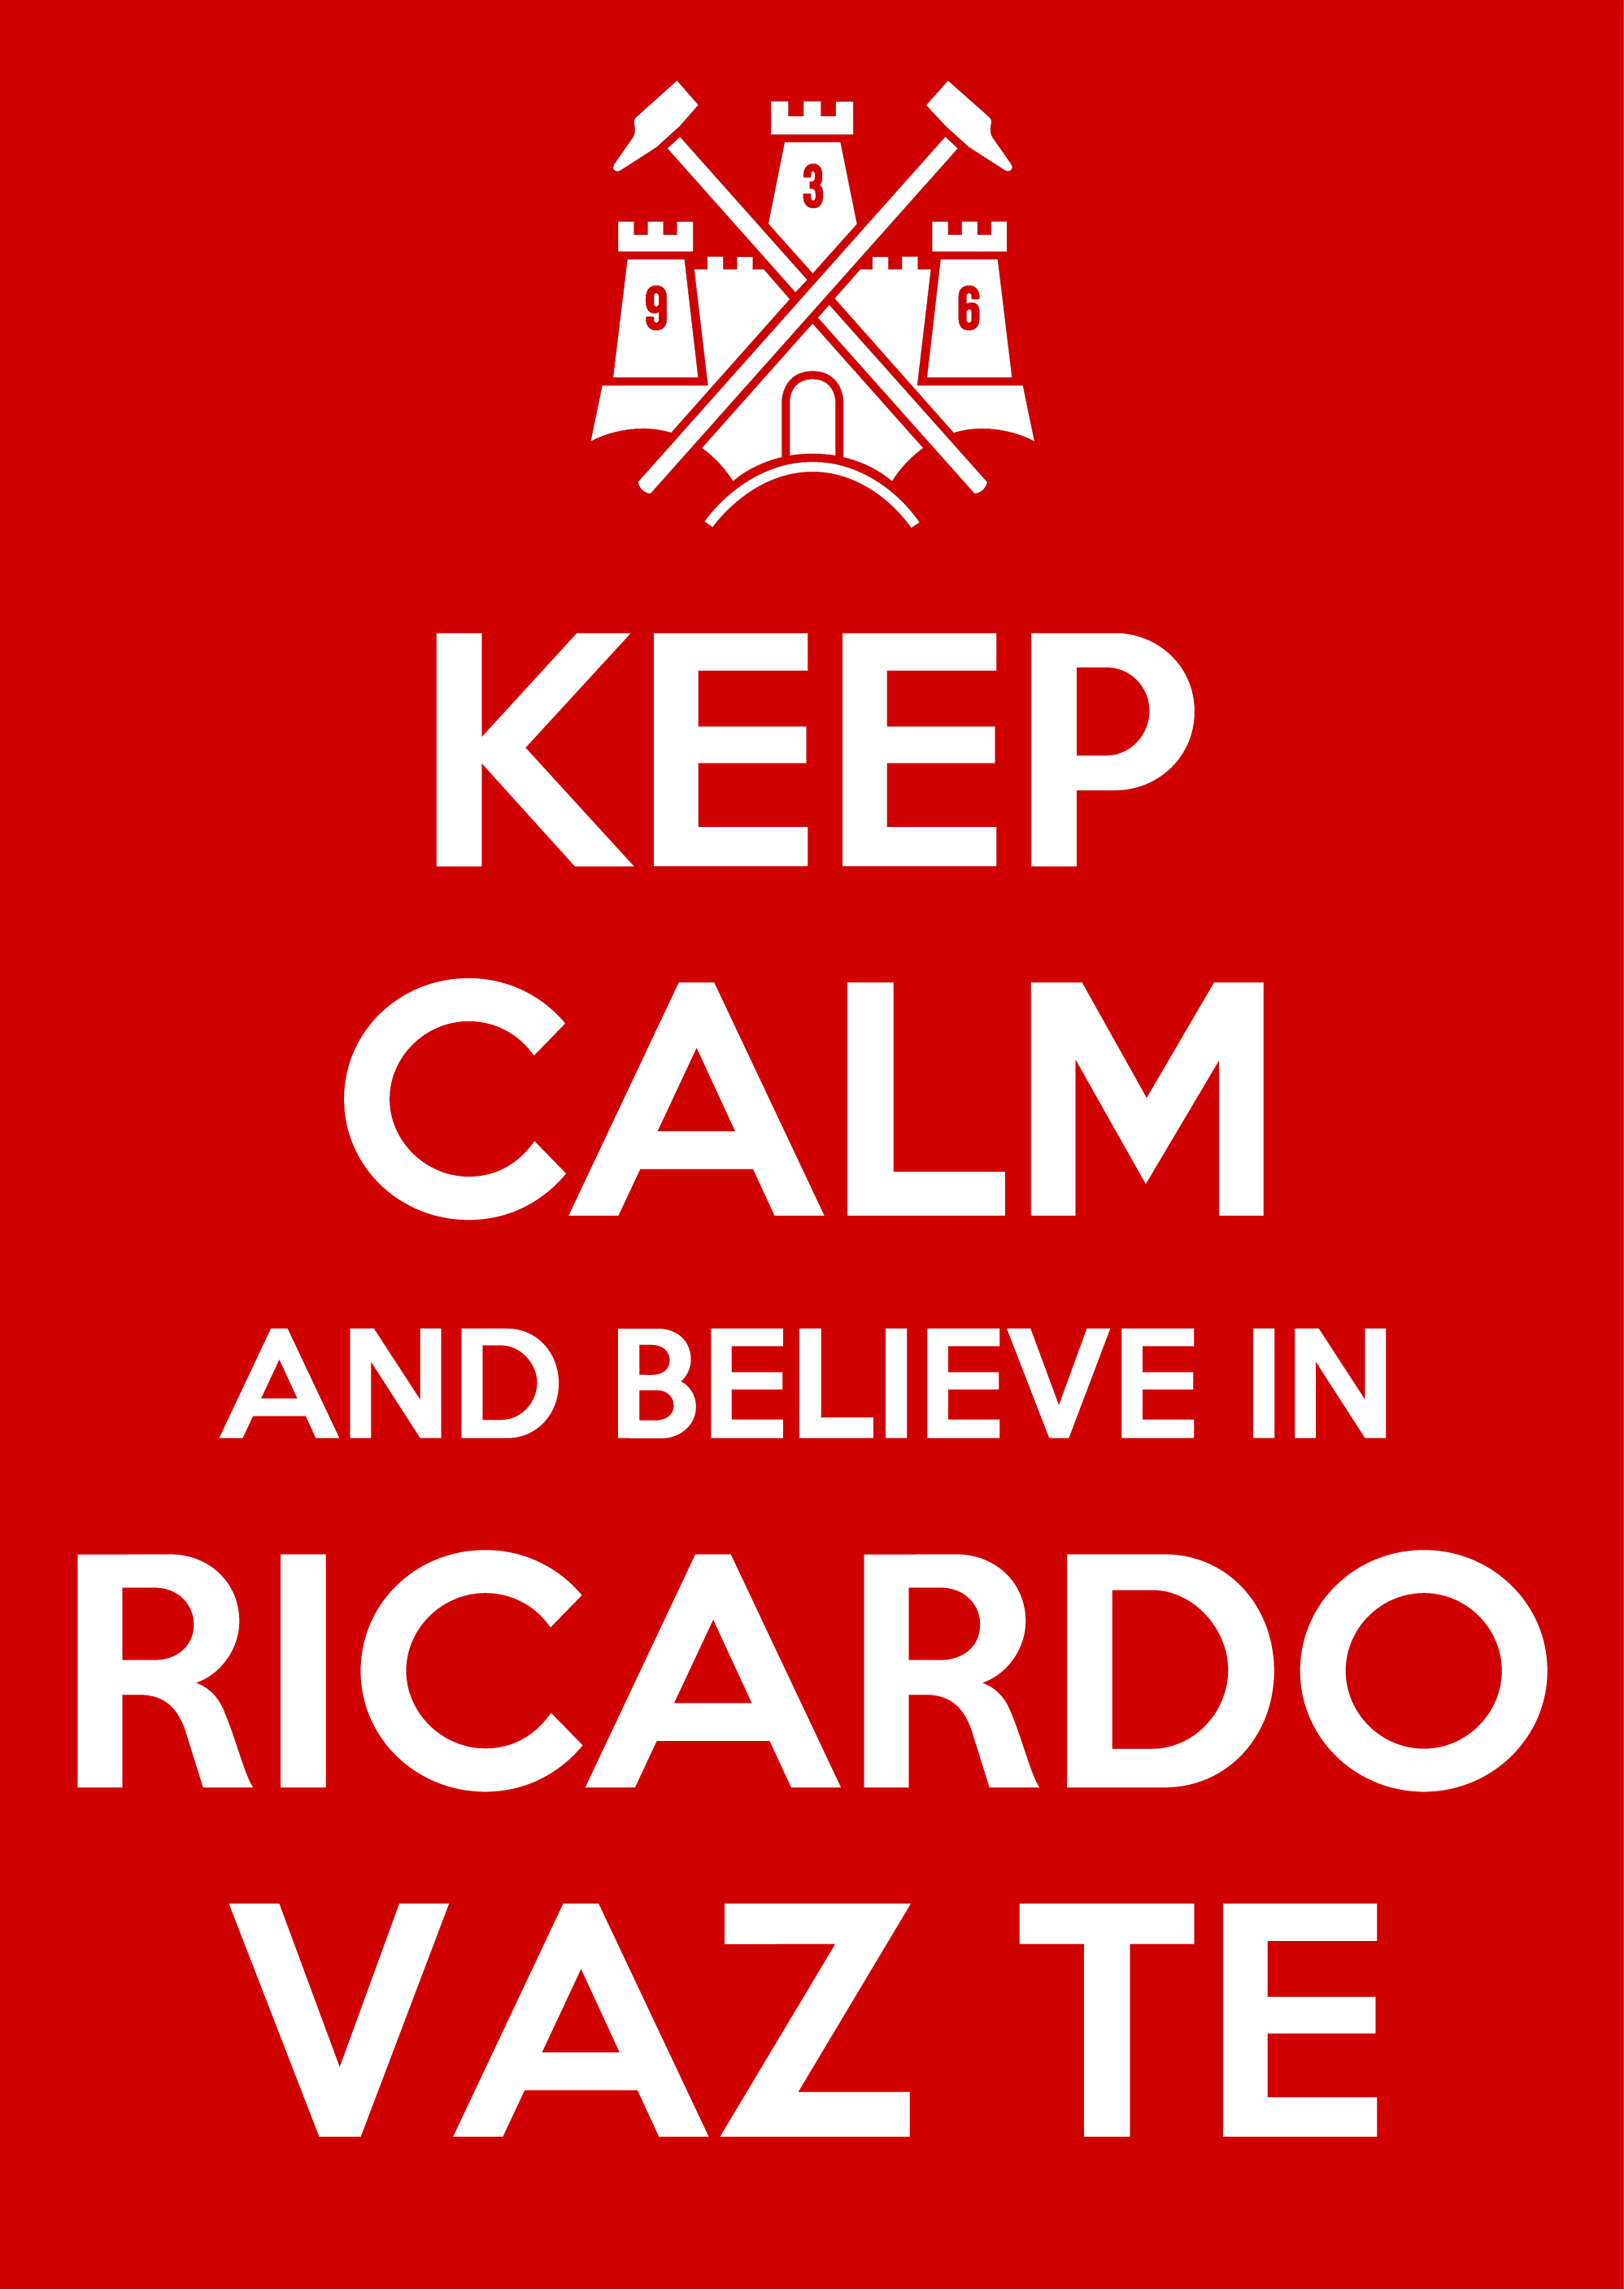 Keep calm and believe in Ricardo Vaz Te